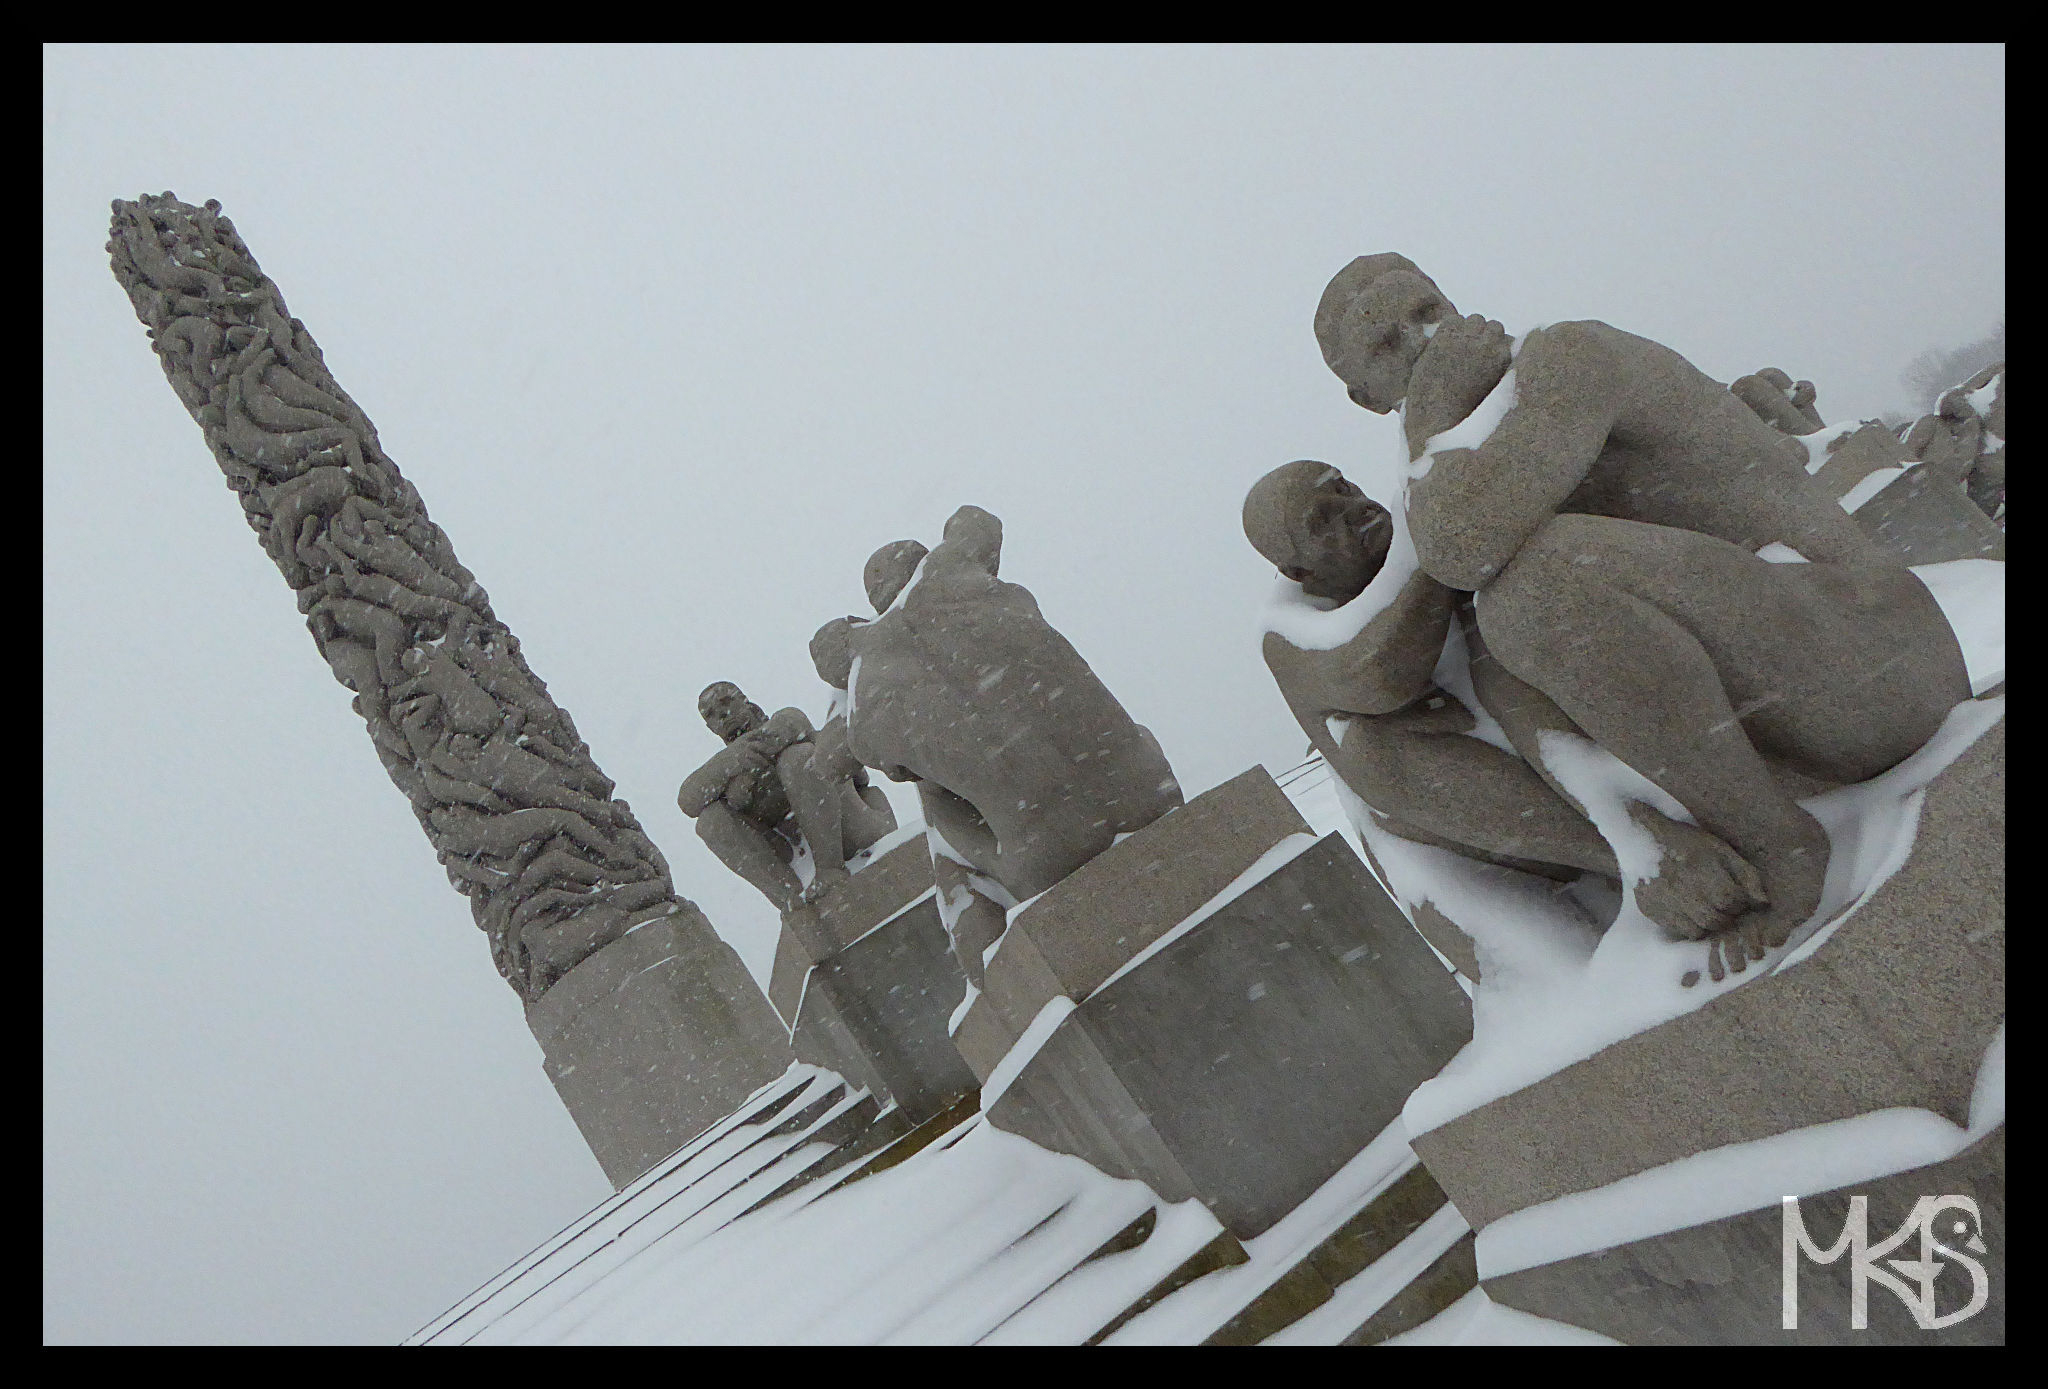 The monolith, Frogner Park, Oslo, Norway